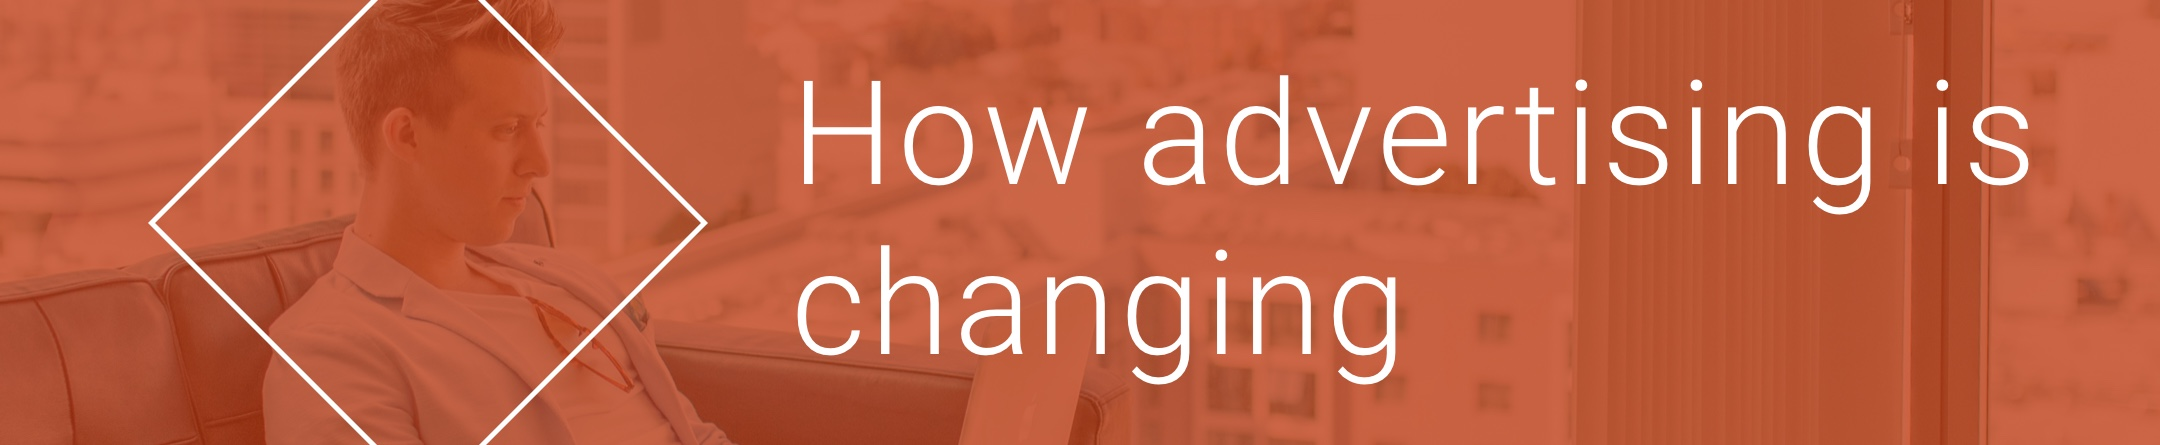 How advertising is changing